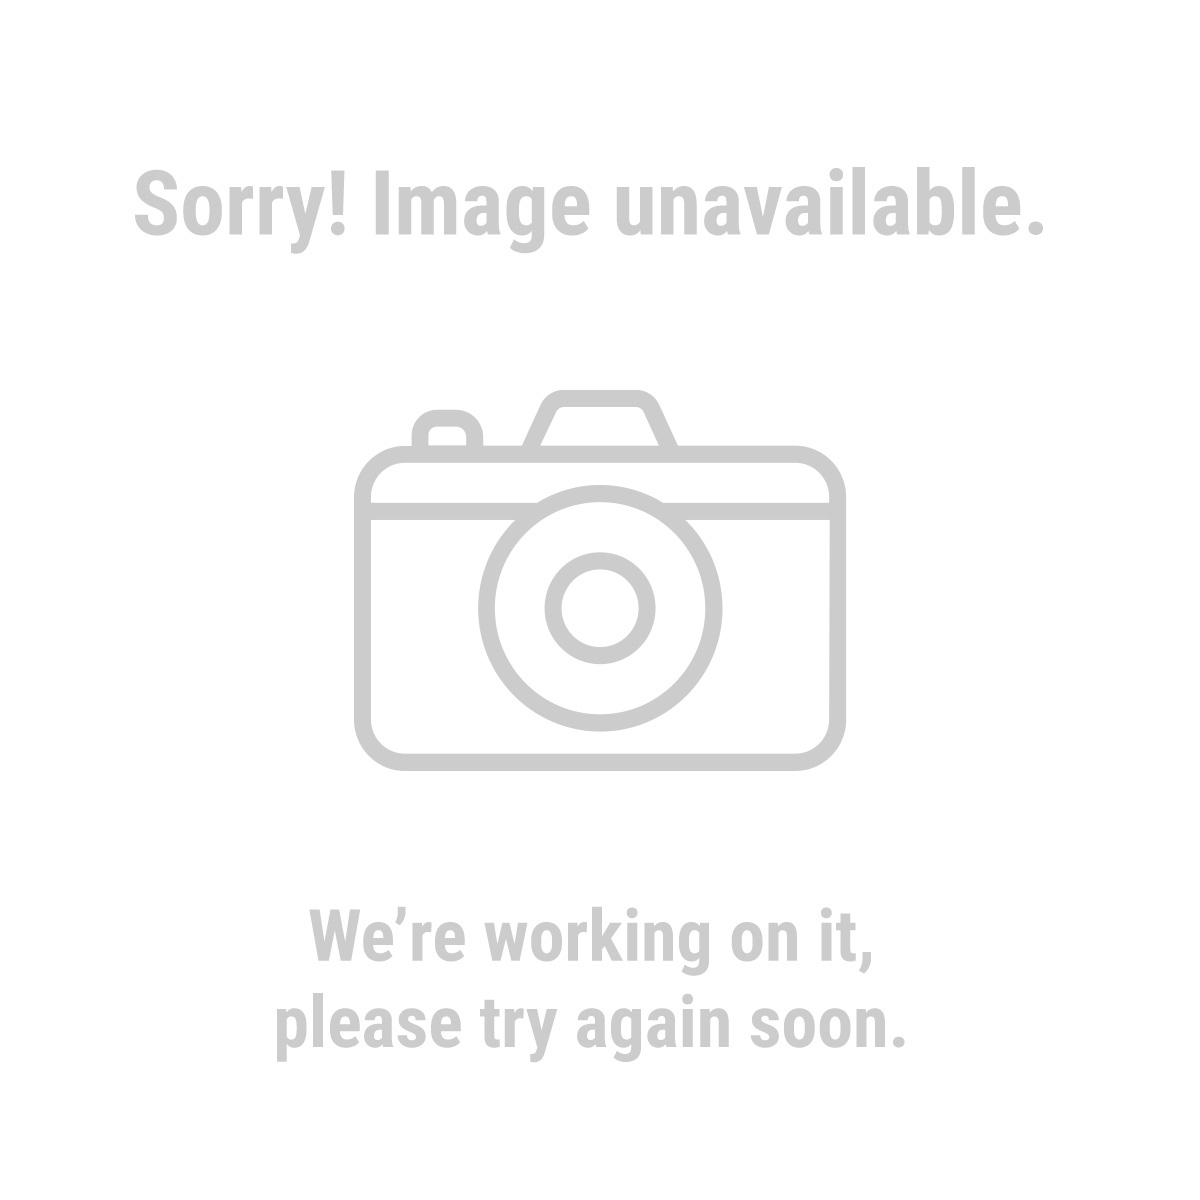 US General Pro 69397 Tool Cart, Five Drawer, 700 lbs. Capacity